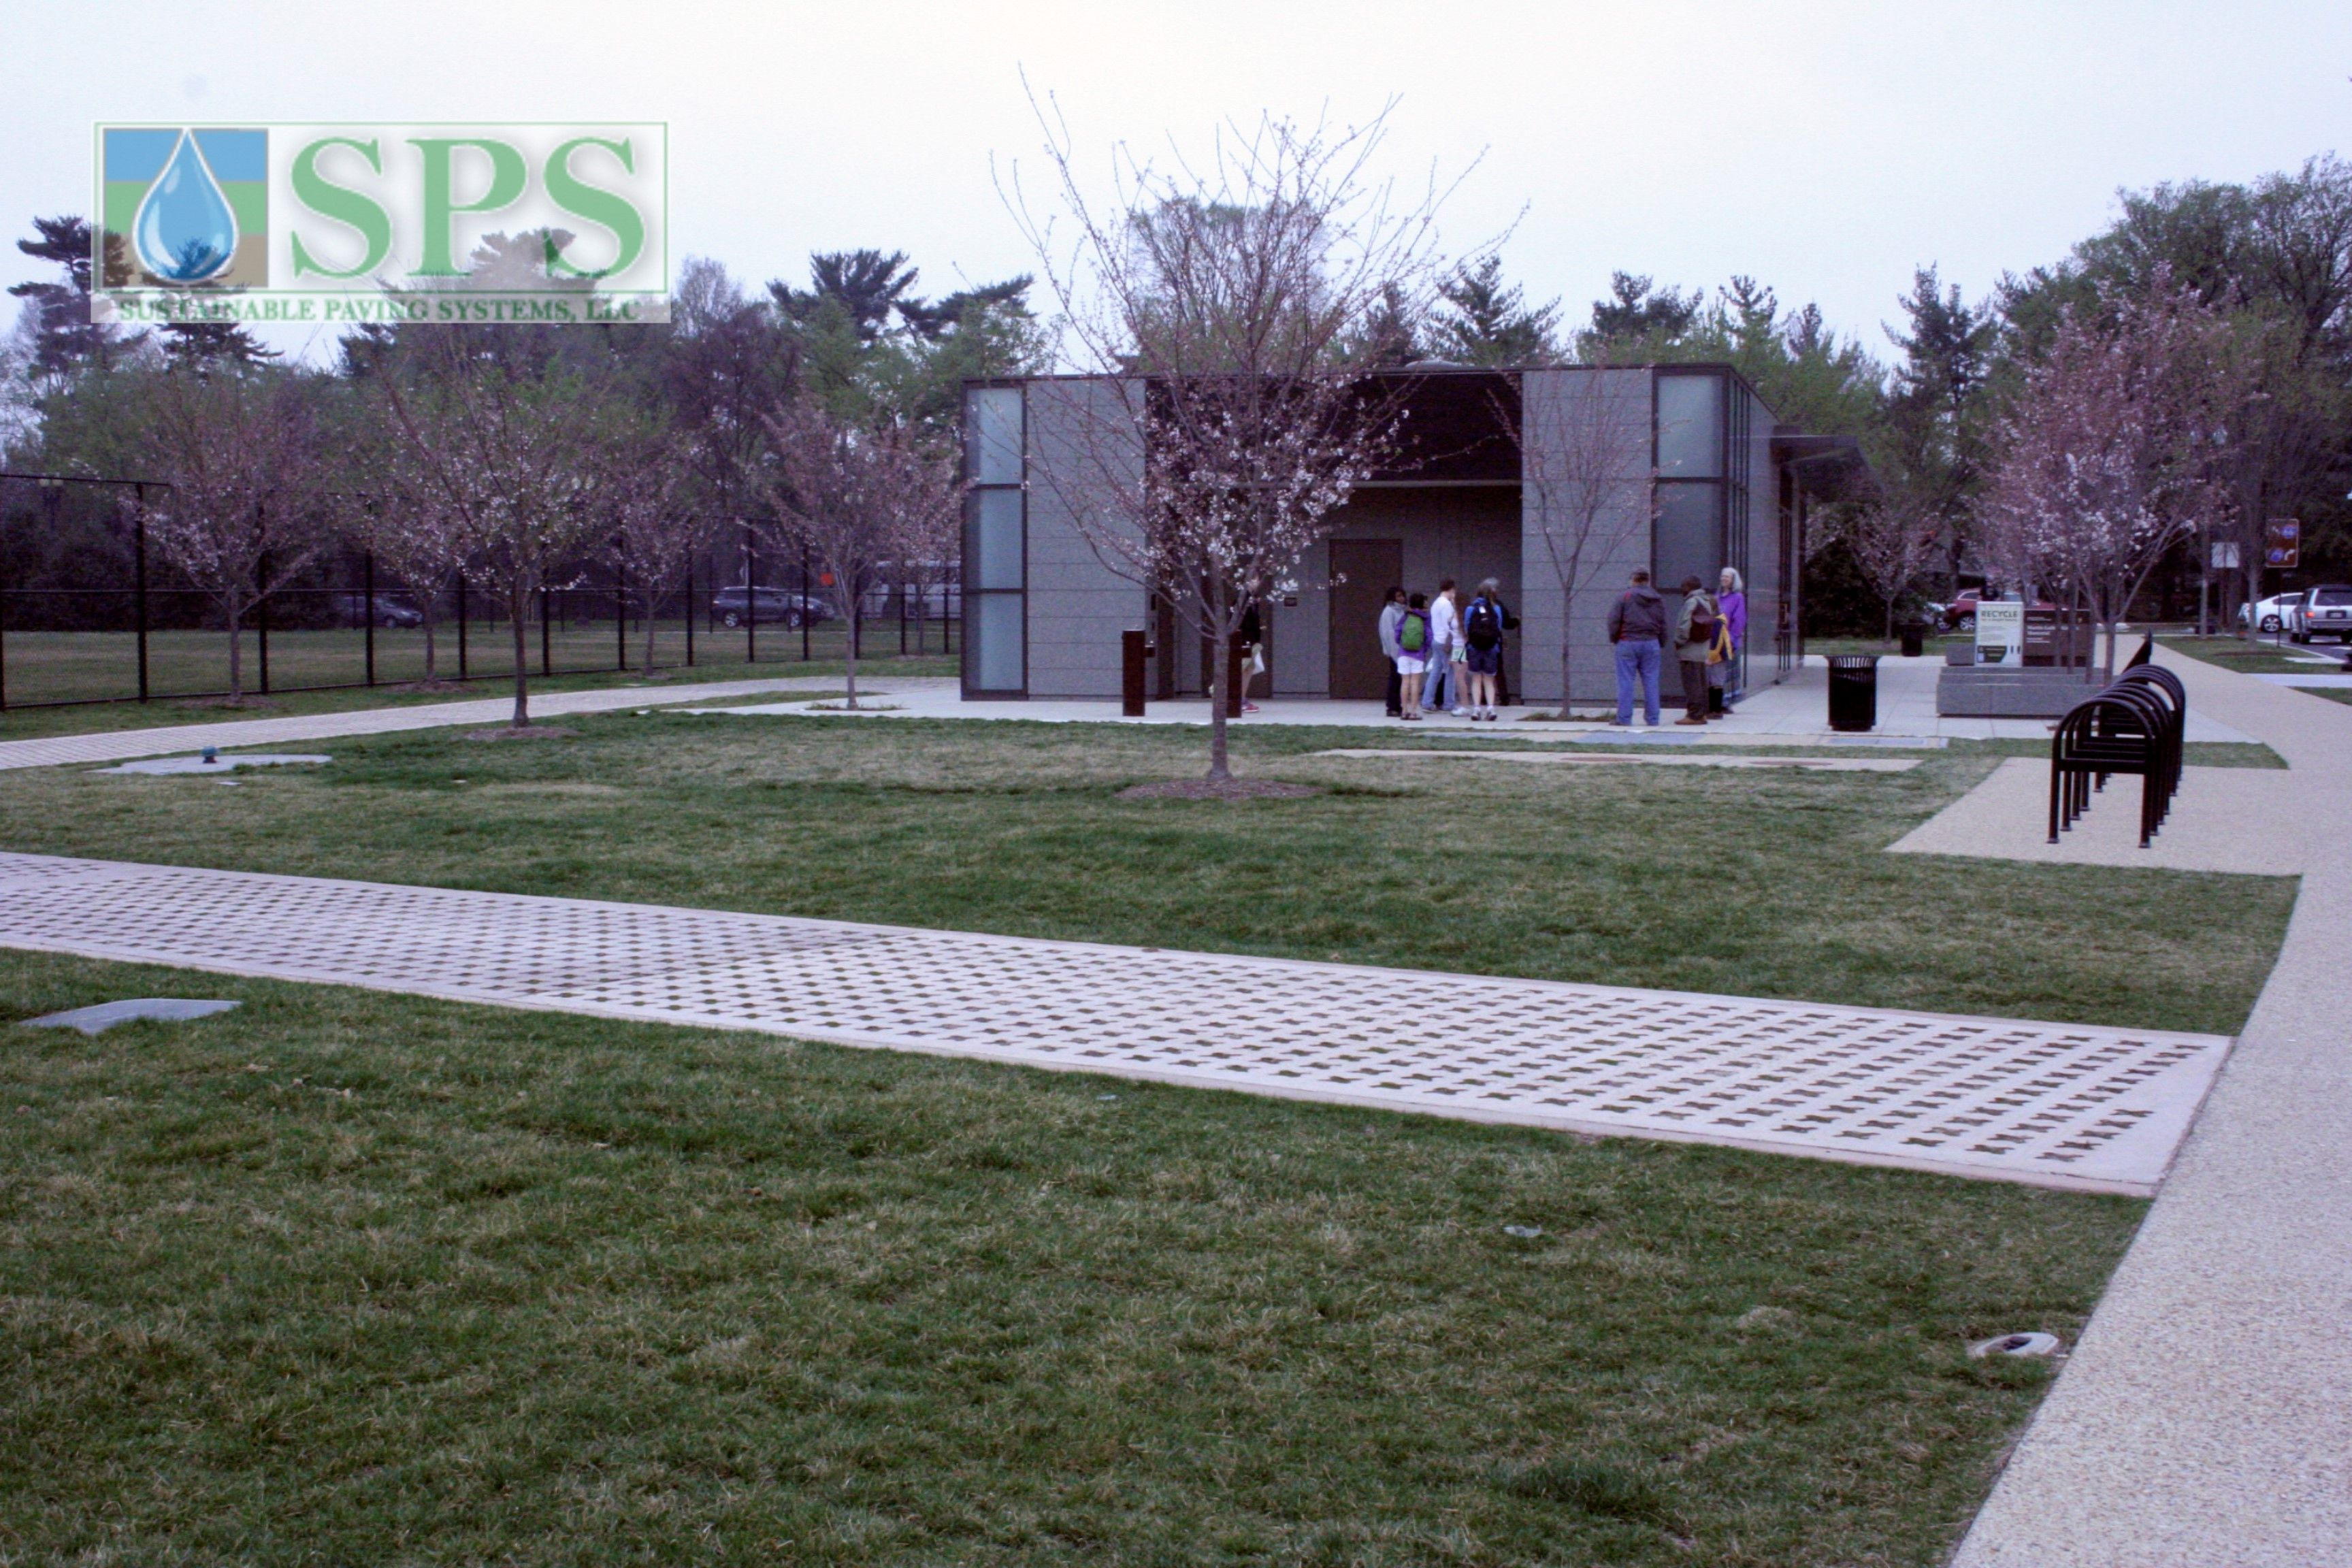 Grasscrete Partially Conceealed System At Mlk National Memorial View Of Vehicle Access_04